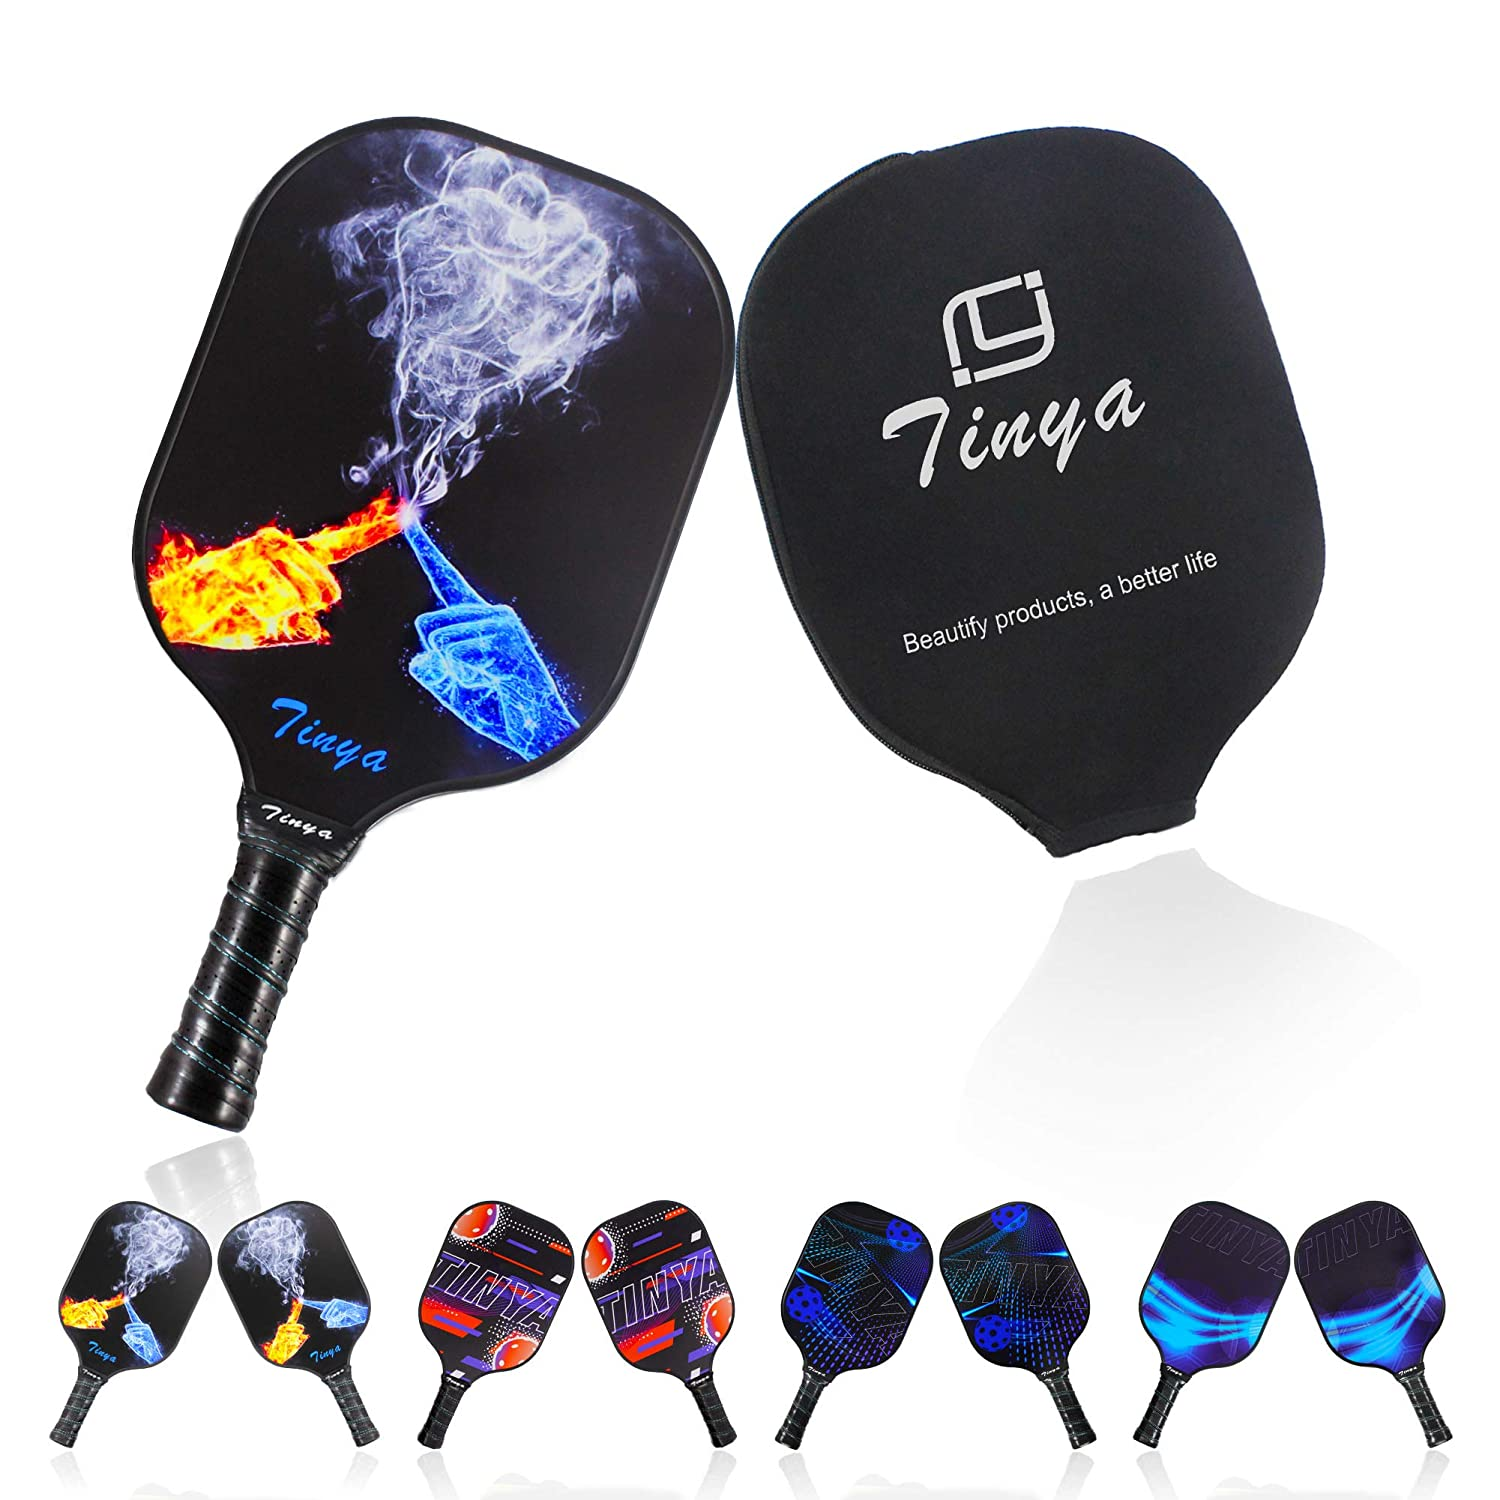 Tinya Graphite Pickleball Paddle Set: 7.6 Oz Black Pop Carbon Fiber Cool Graphic Best 3K Composite Large Lightweight Top Long Grip Professional Power ...